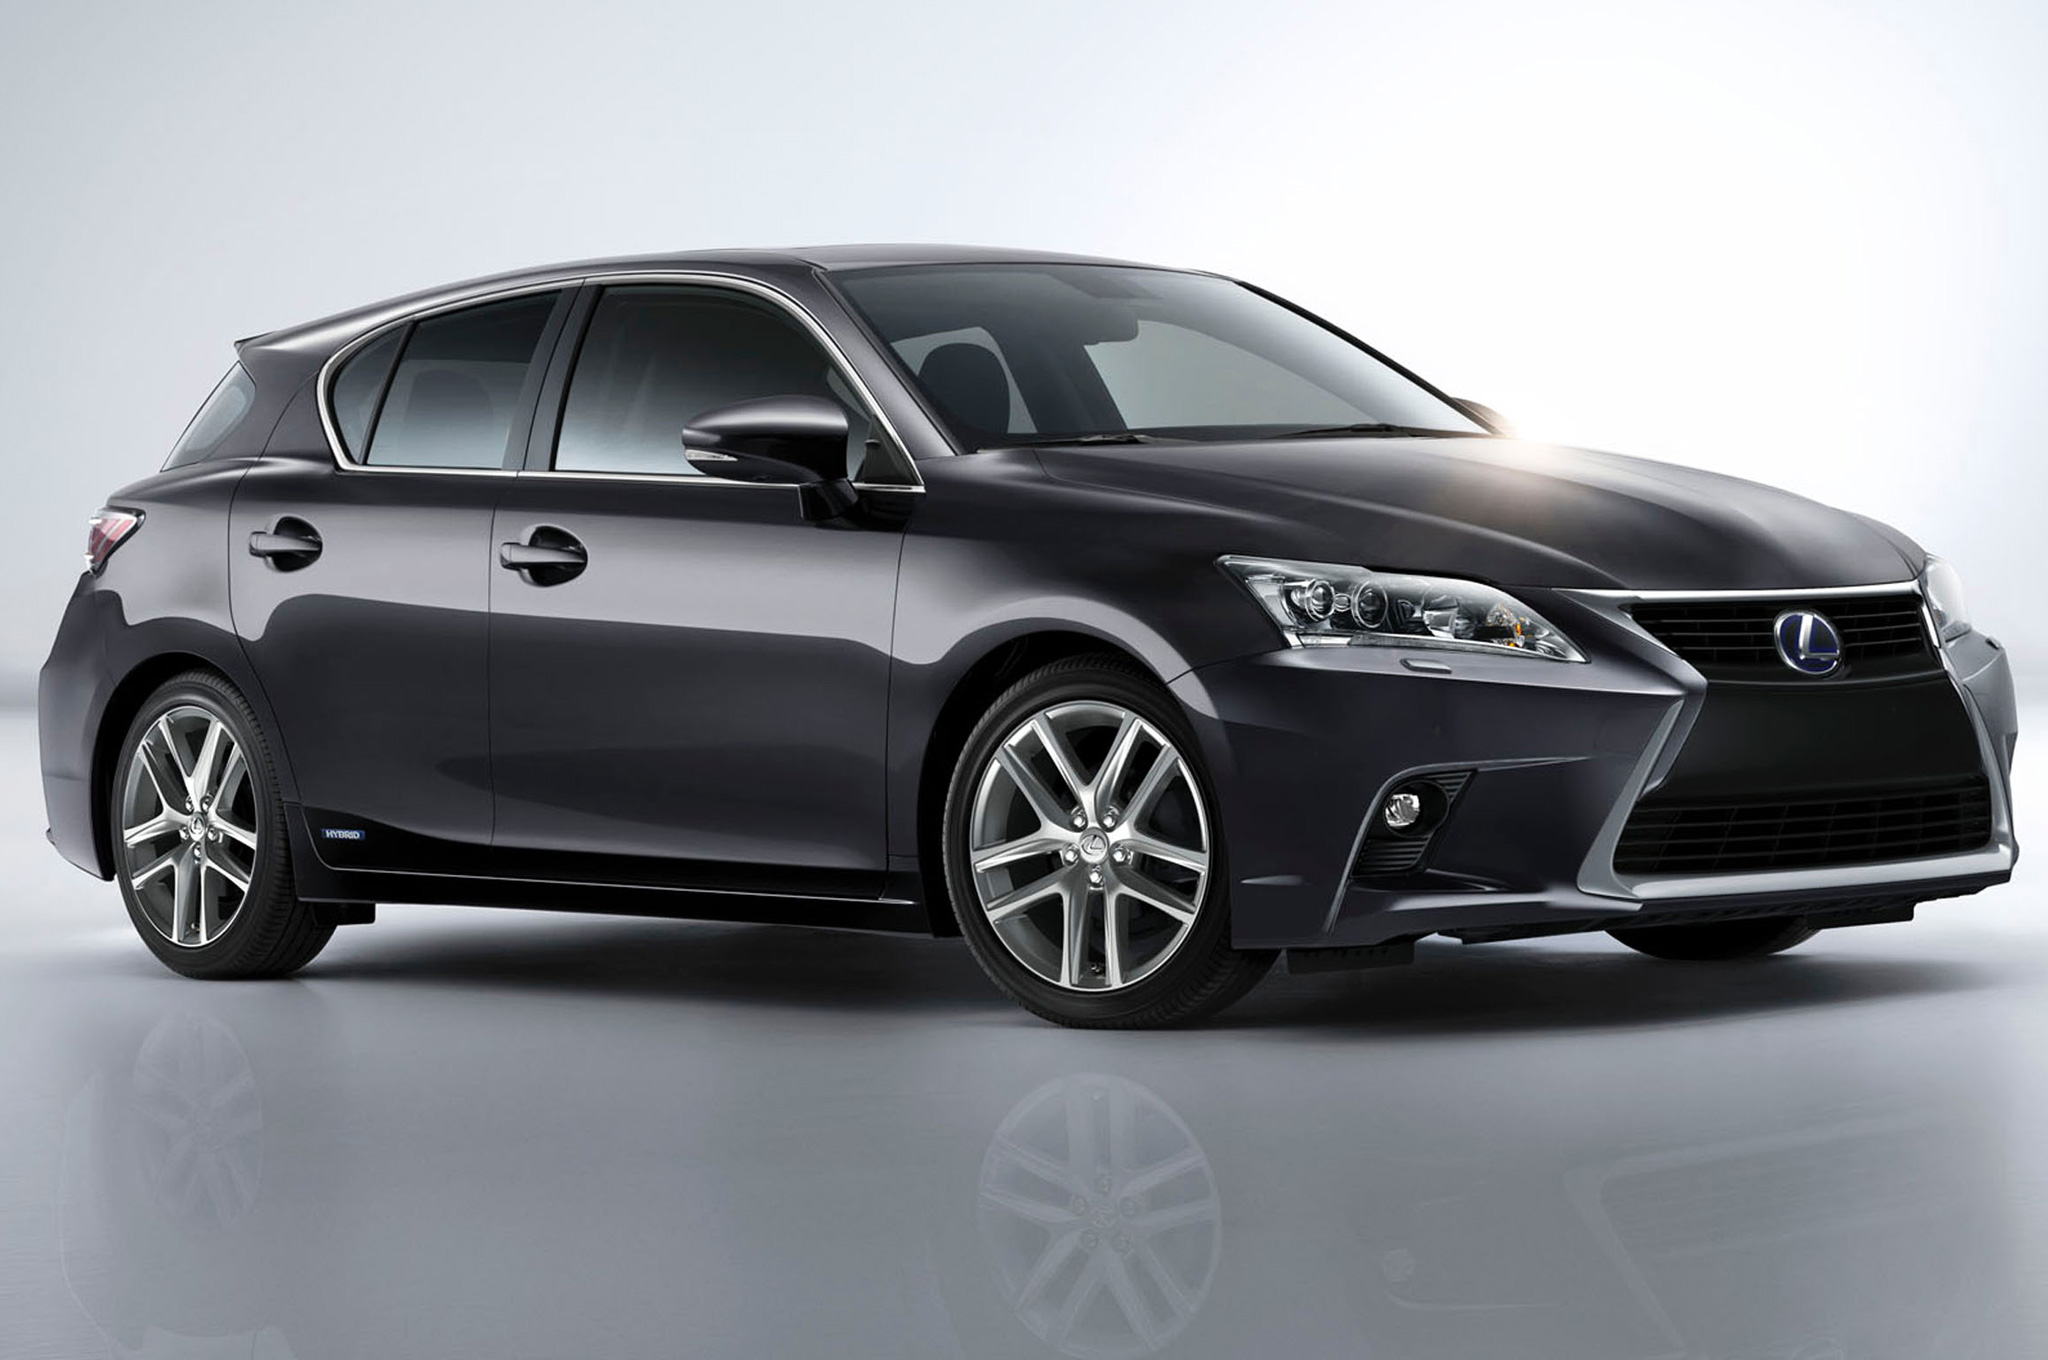 buyers new j cars power guides for d lexus car hybrid articles